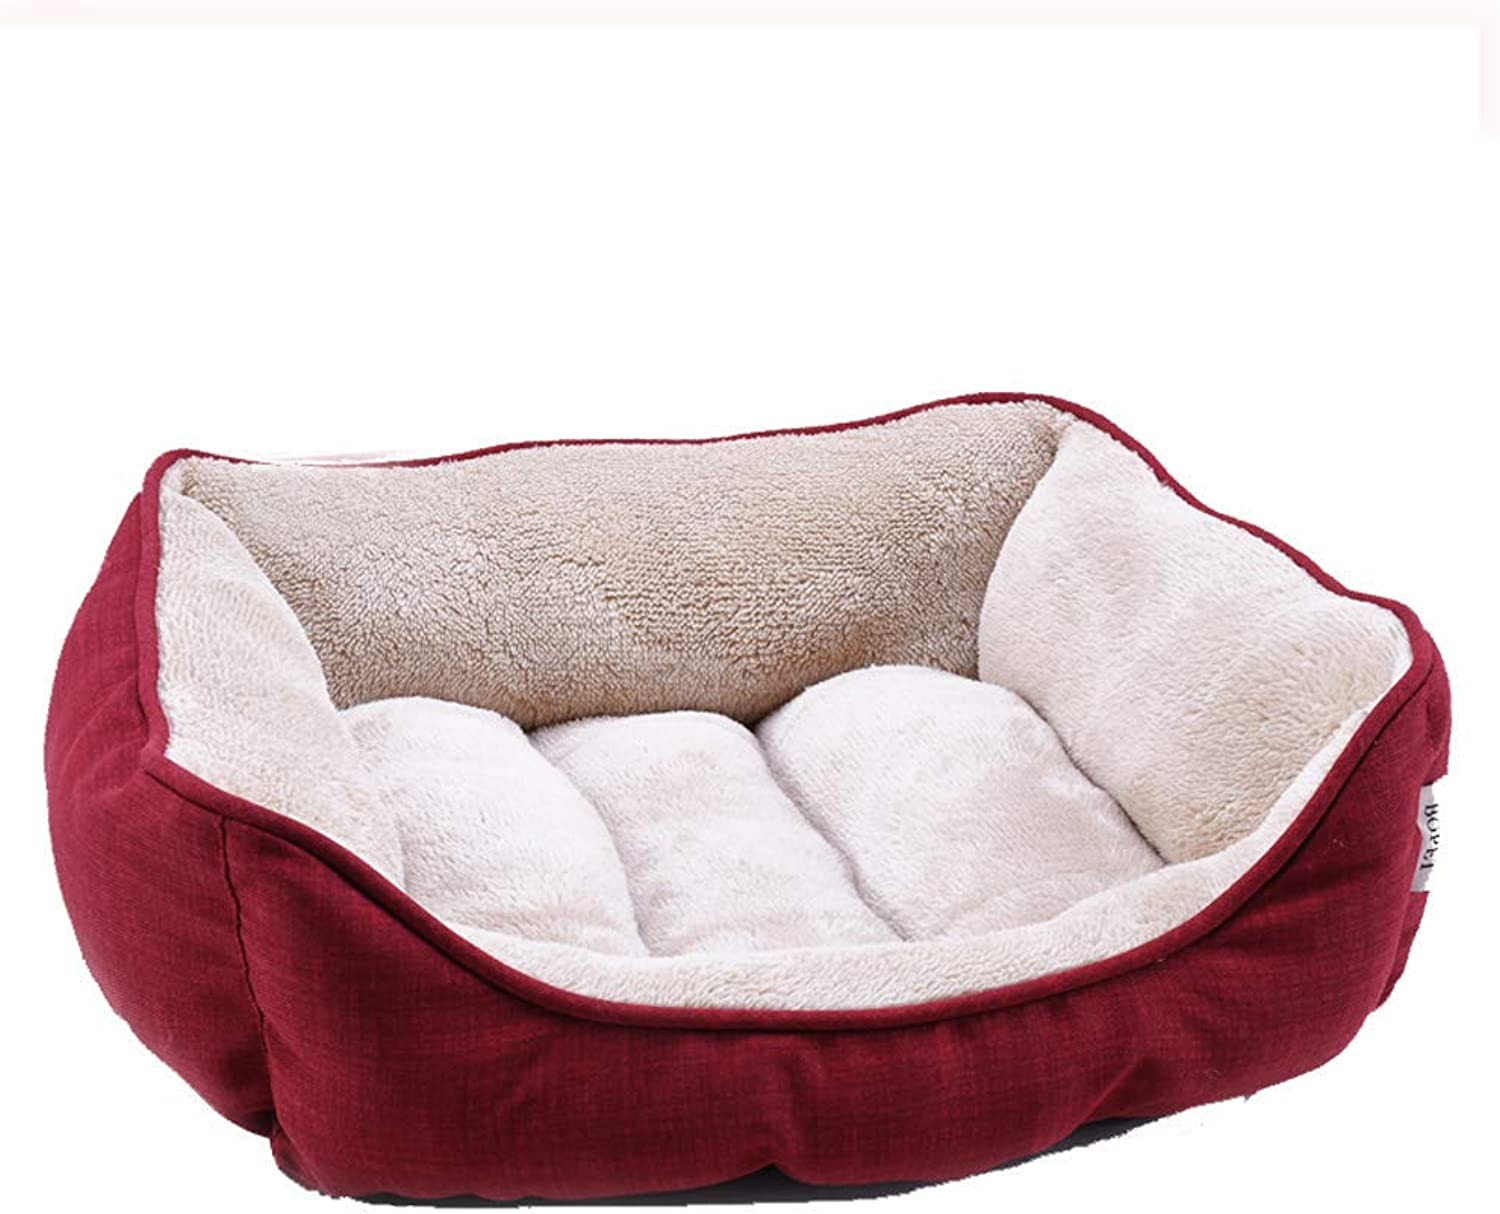 Kenndel Pads Dog Bed Pet Bed and Red Square Pet nest Four Seasons Universal Small Velvet Dog Litter Mattress Lettore caldo Autumn e Winter Models Cat Pet Supply Cover (Dimensione: M (20kg di animali))